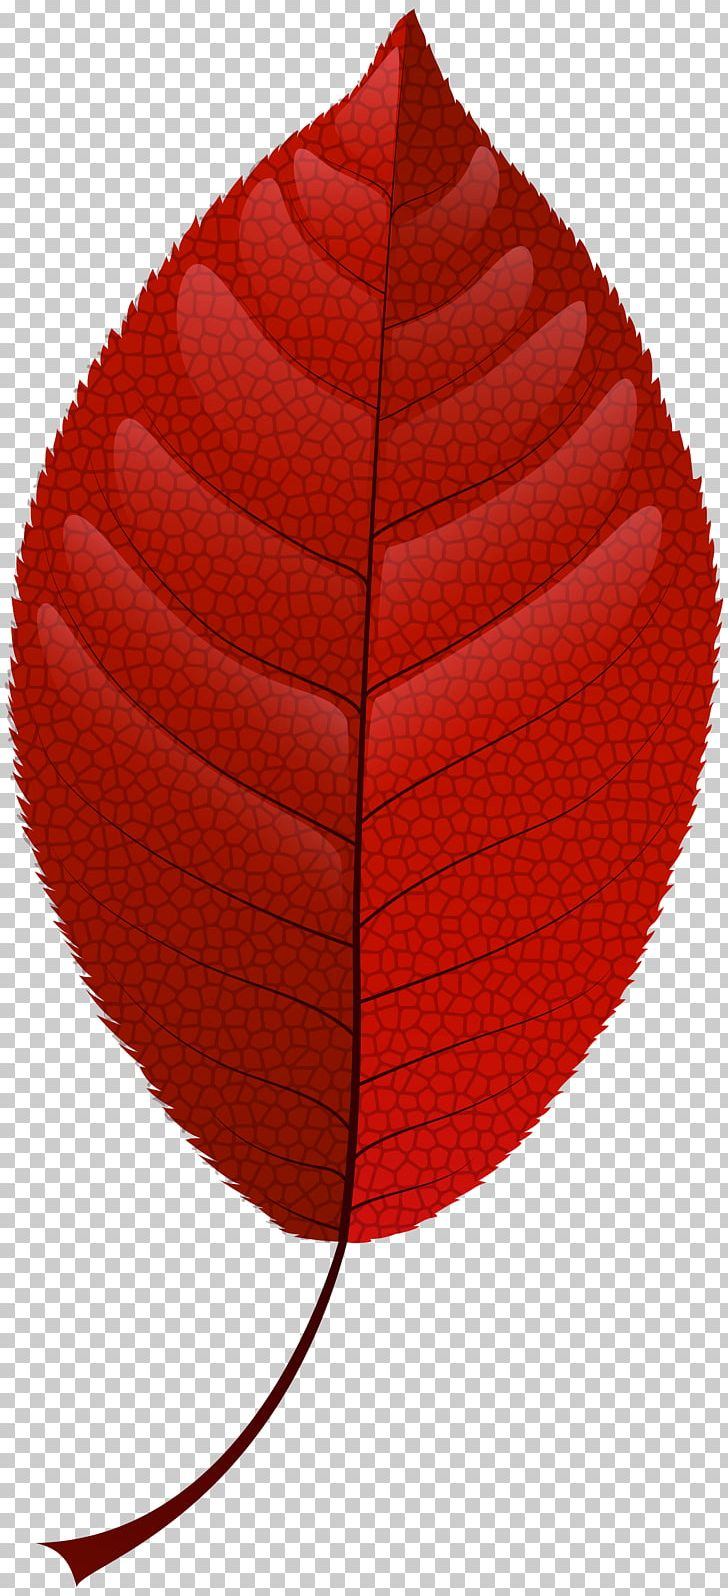 Autumn Leaf Color Red PNG, Clipart, Autumn, Autumn Leaf Color, Cap, Drawing, Green Free PNG Download